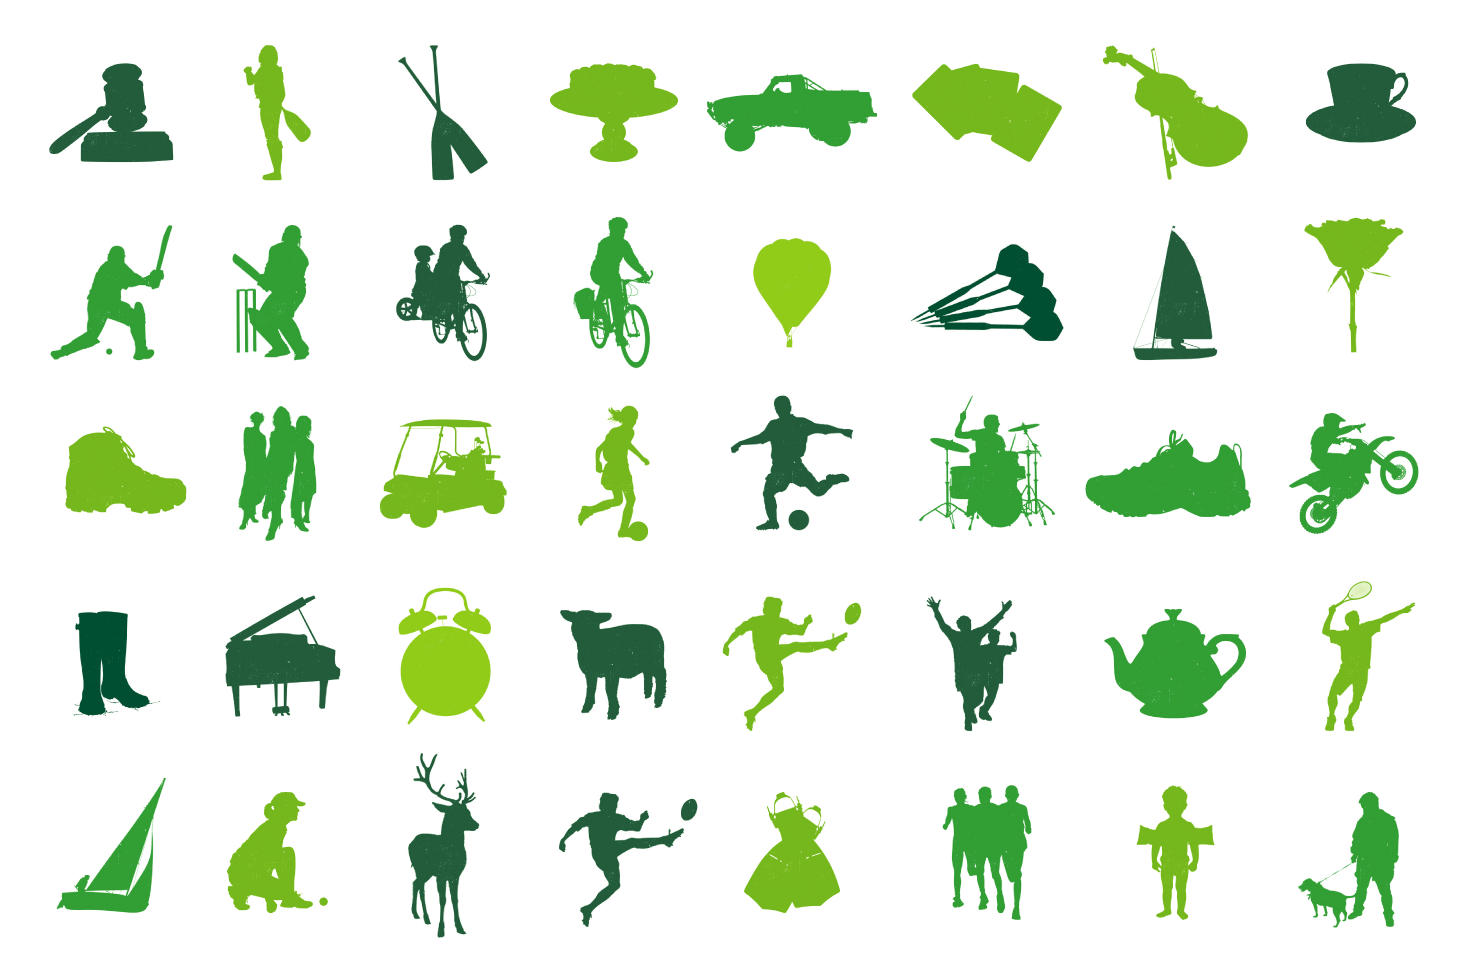 Macmillan Cancer Support icons